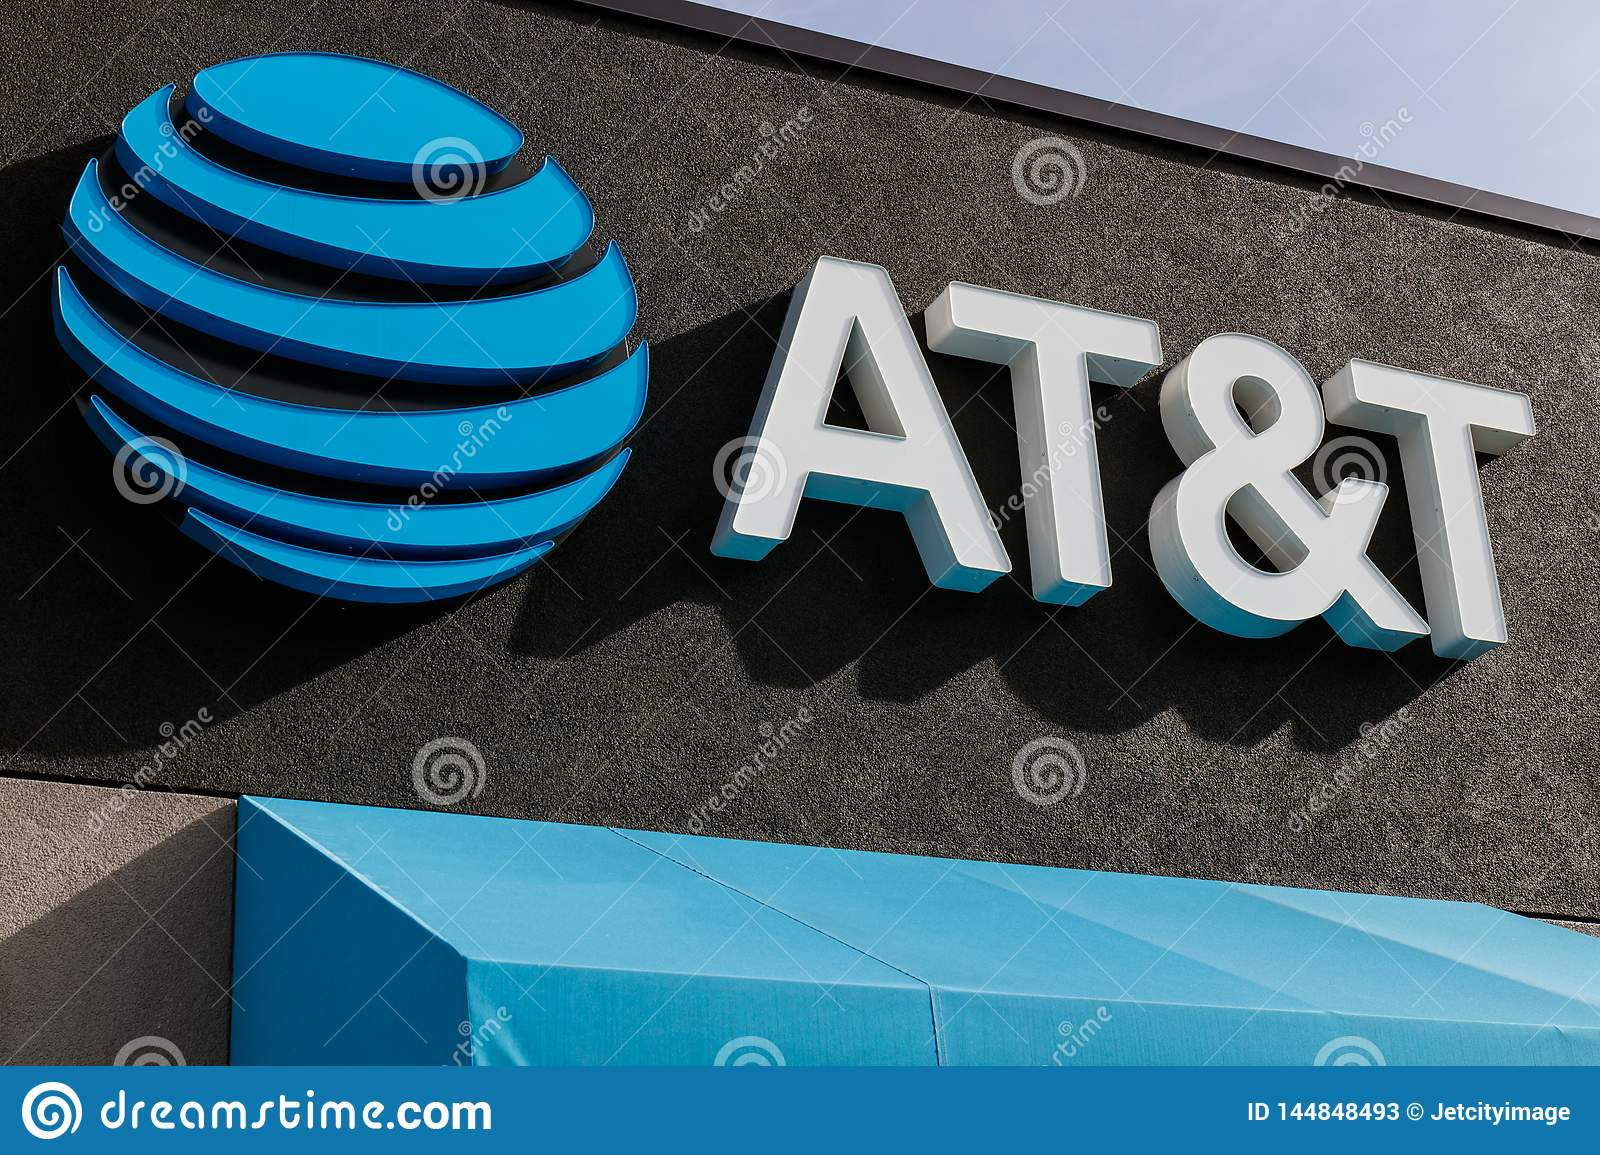 AT&T Retail cell phone and mobility store. AT&T wrapped up its merger with WarnerMedia and now controls HBO and CNN VII